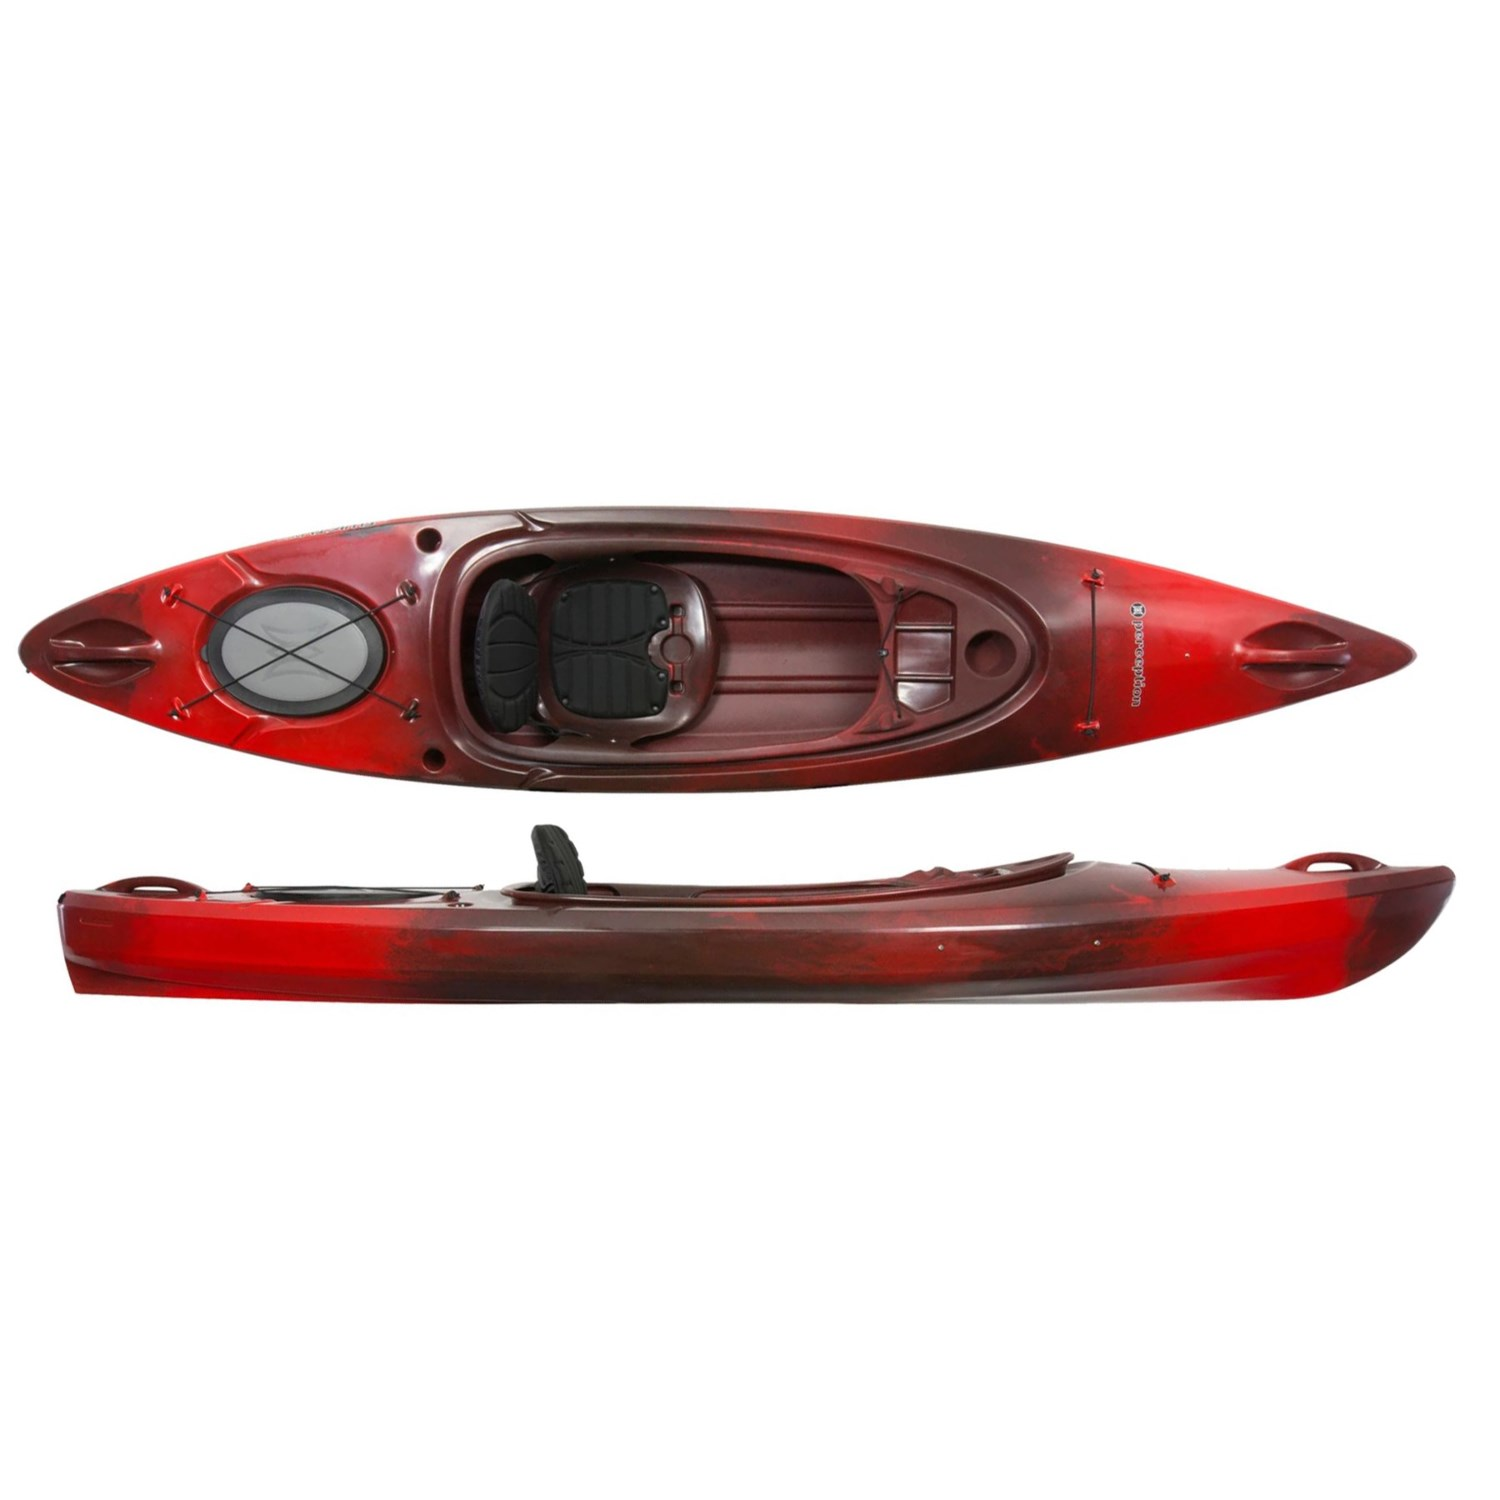 Perception Swifty Deluxe 11 5 Kayak - Sit-In - Save 23%